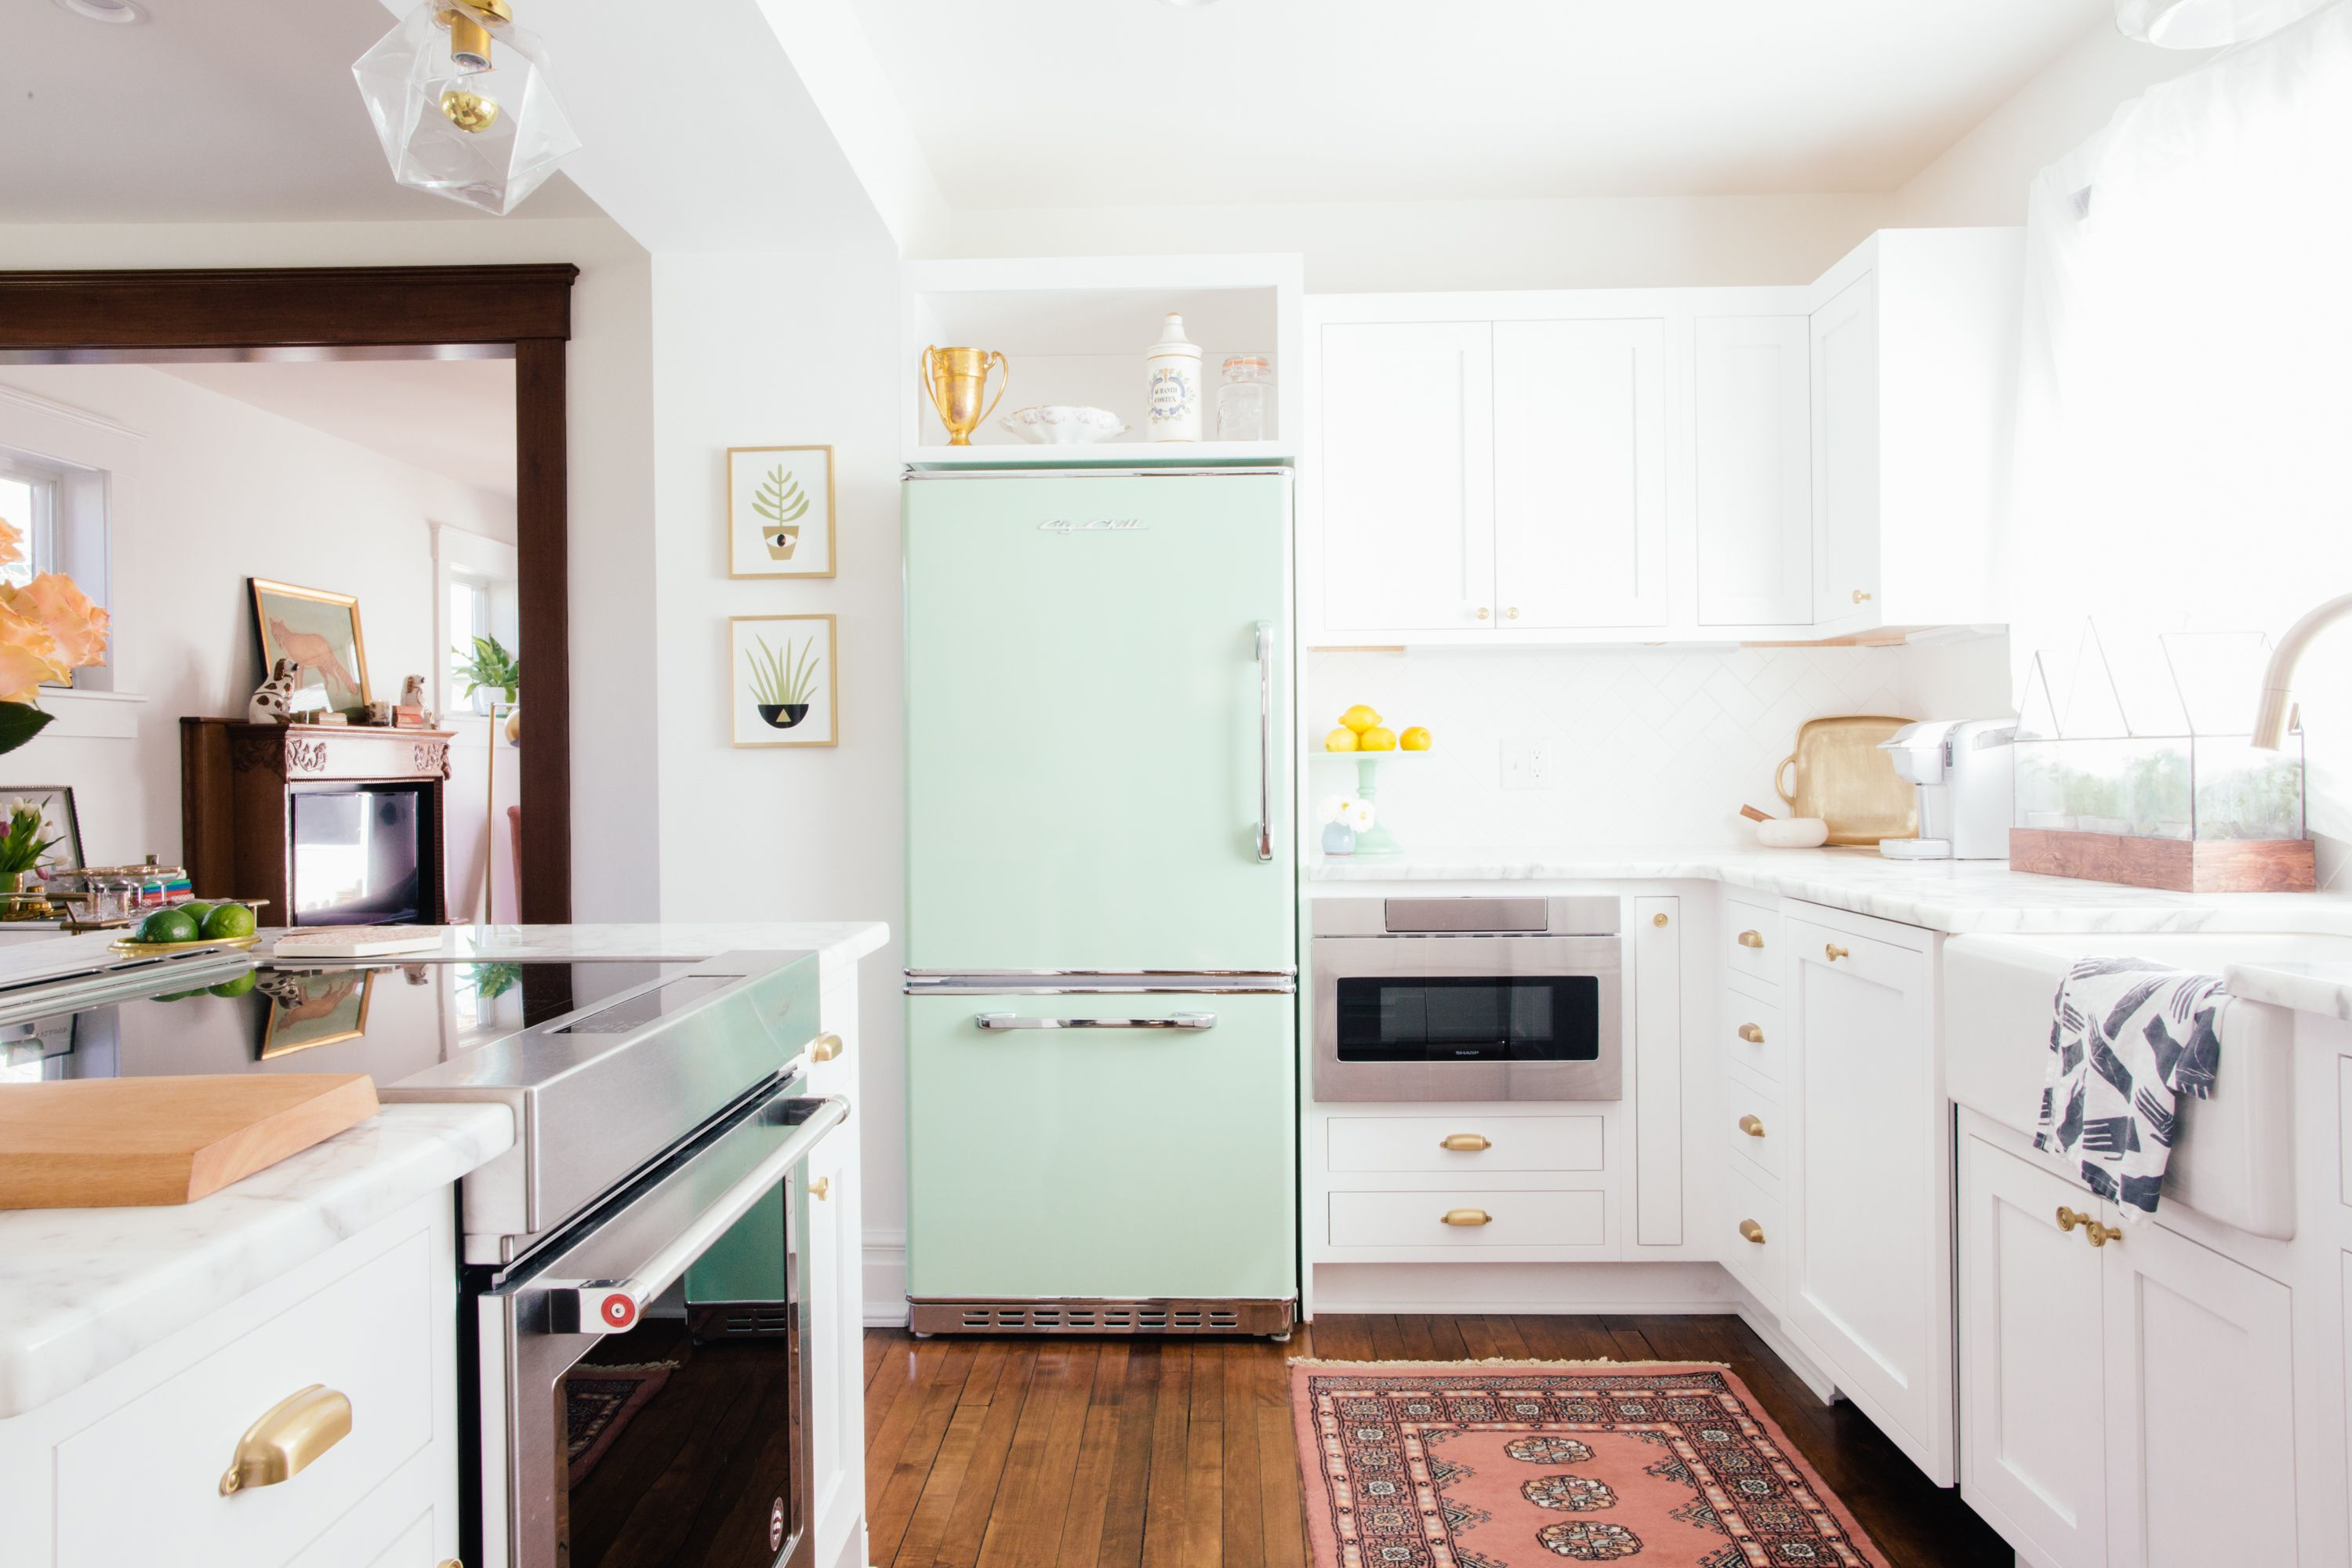 A New Yorker Transforms An 1890s Michigan House Into A Hip Cozy Home Kitchen Work Triangle Kitchen Trends Rental Kitchen